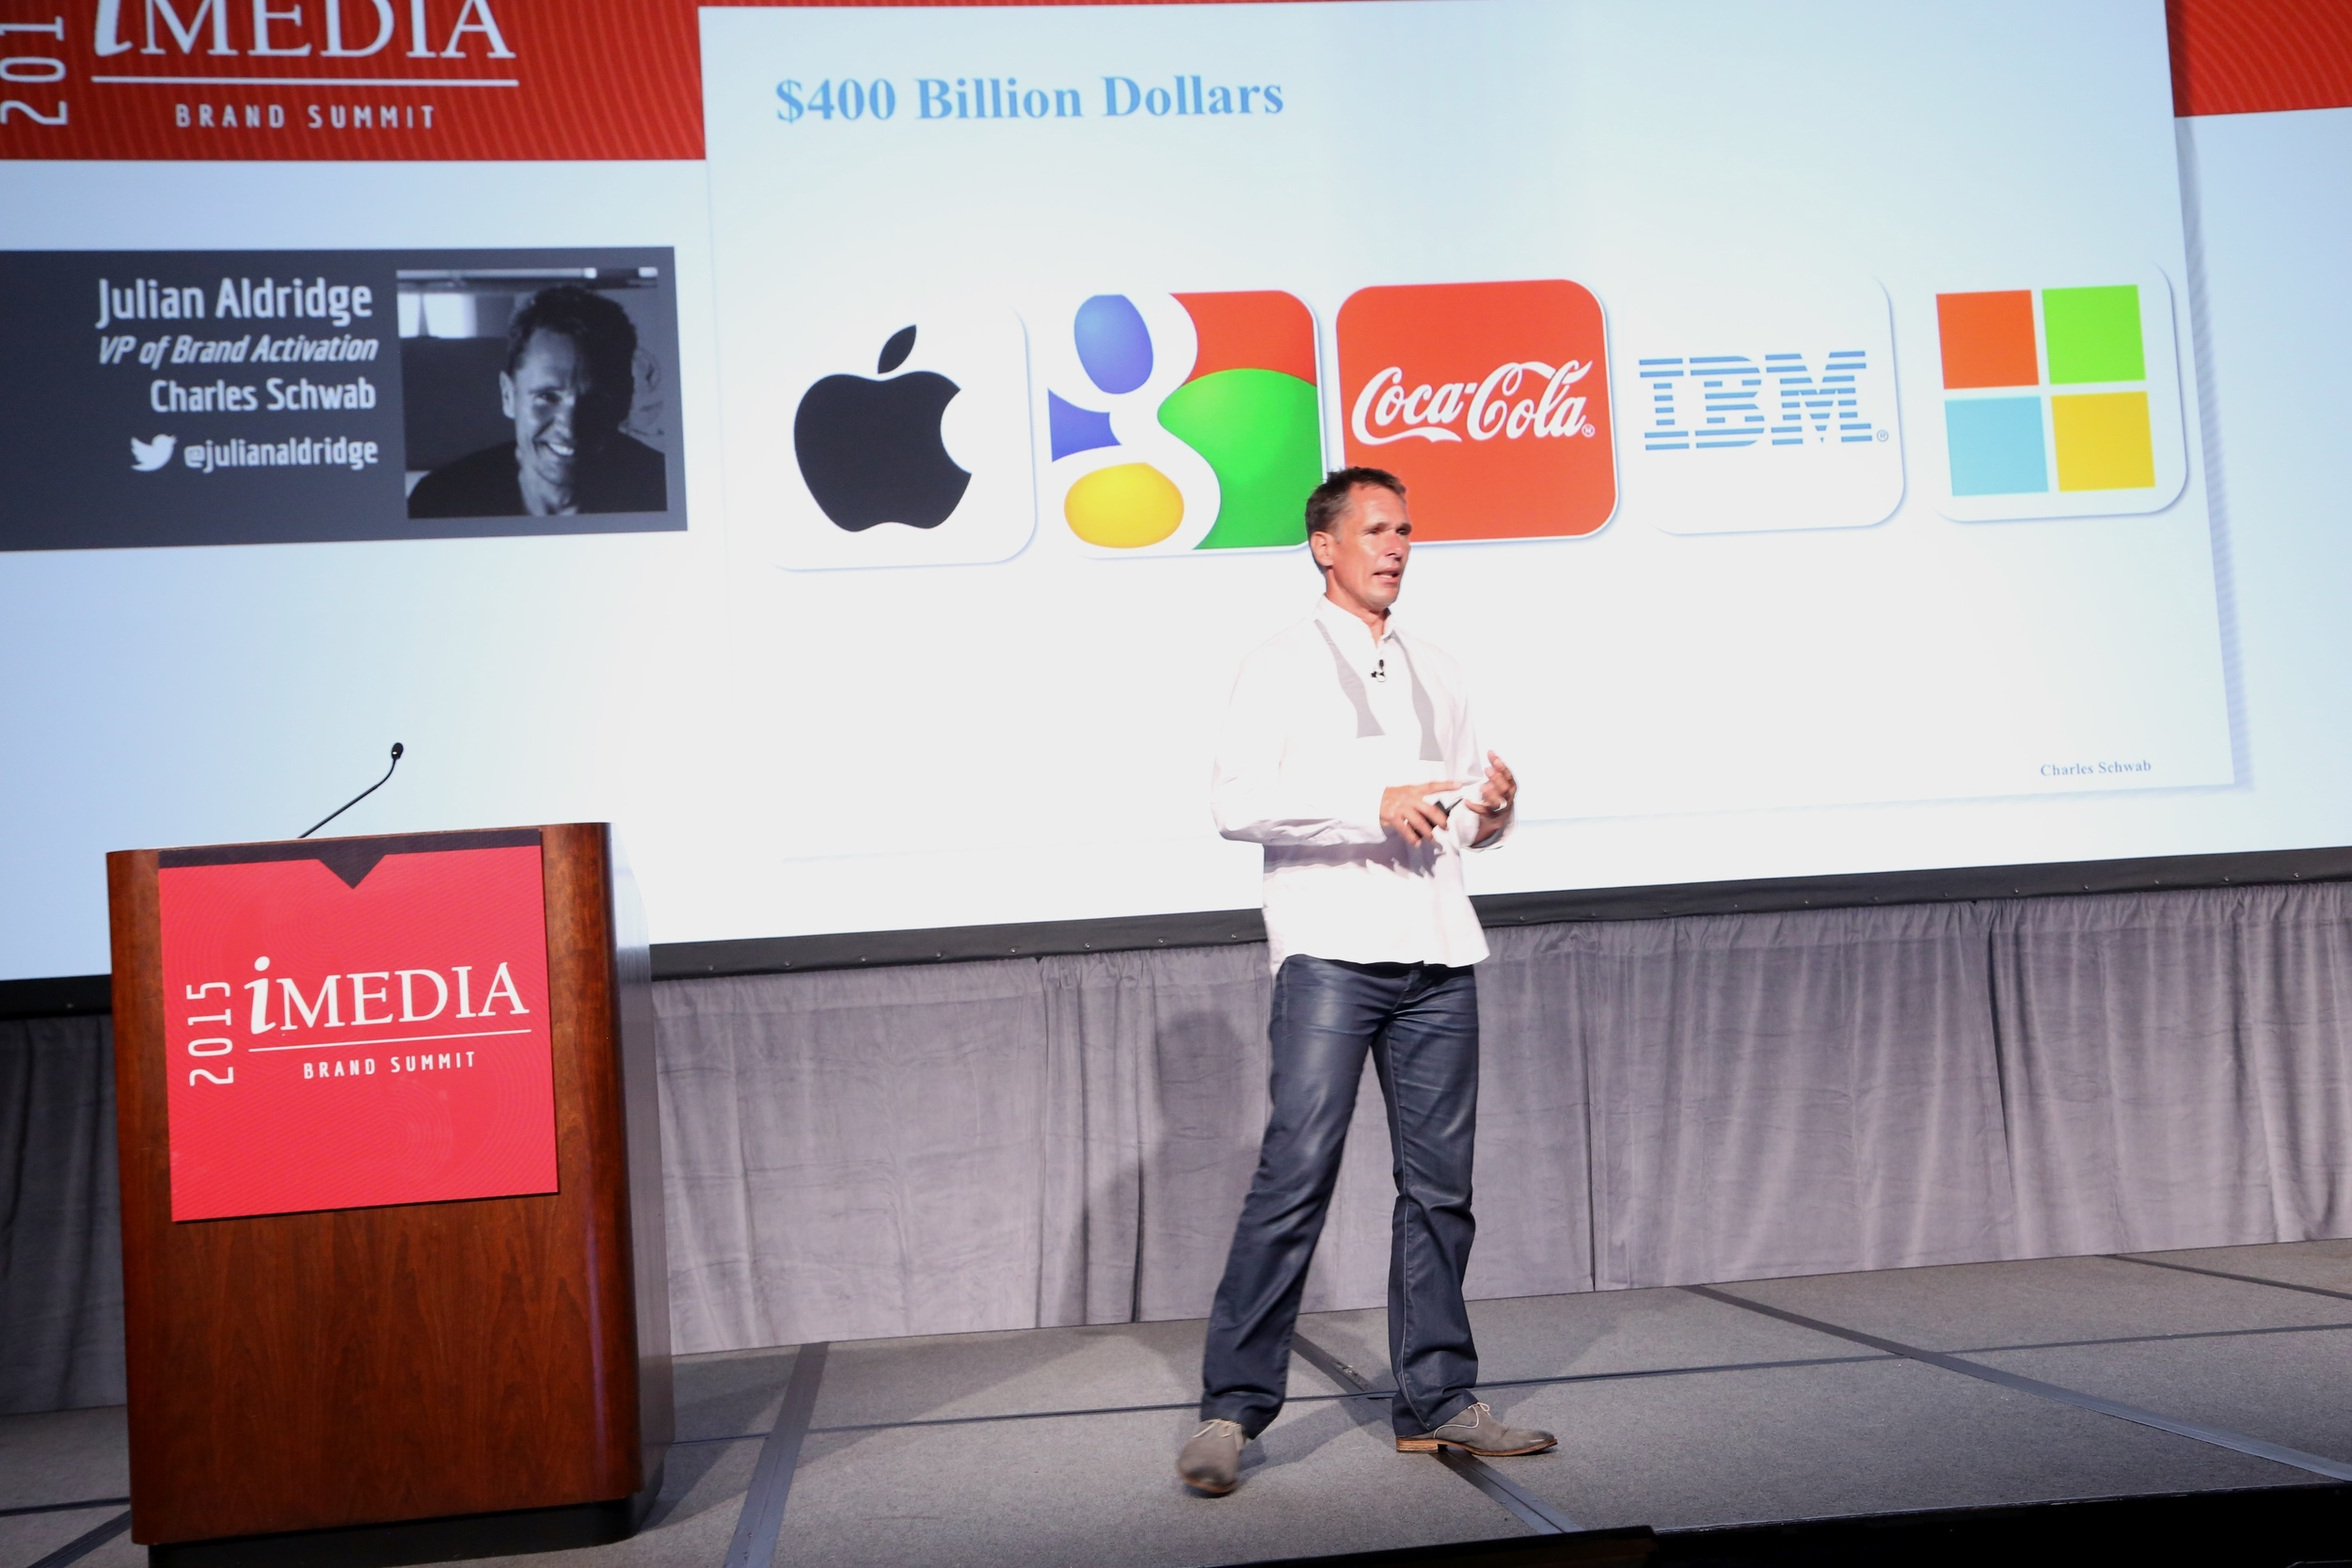 imediasummit_Julian_Aldridge 23.jpg